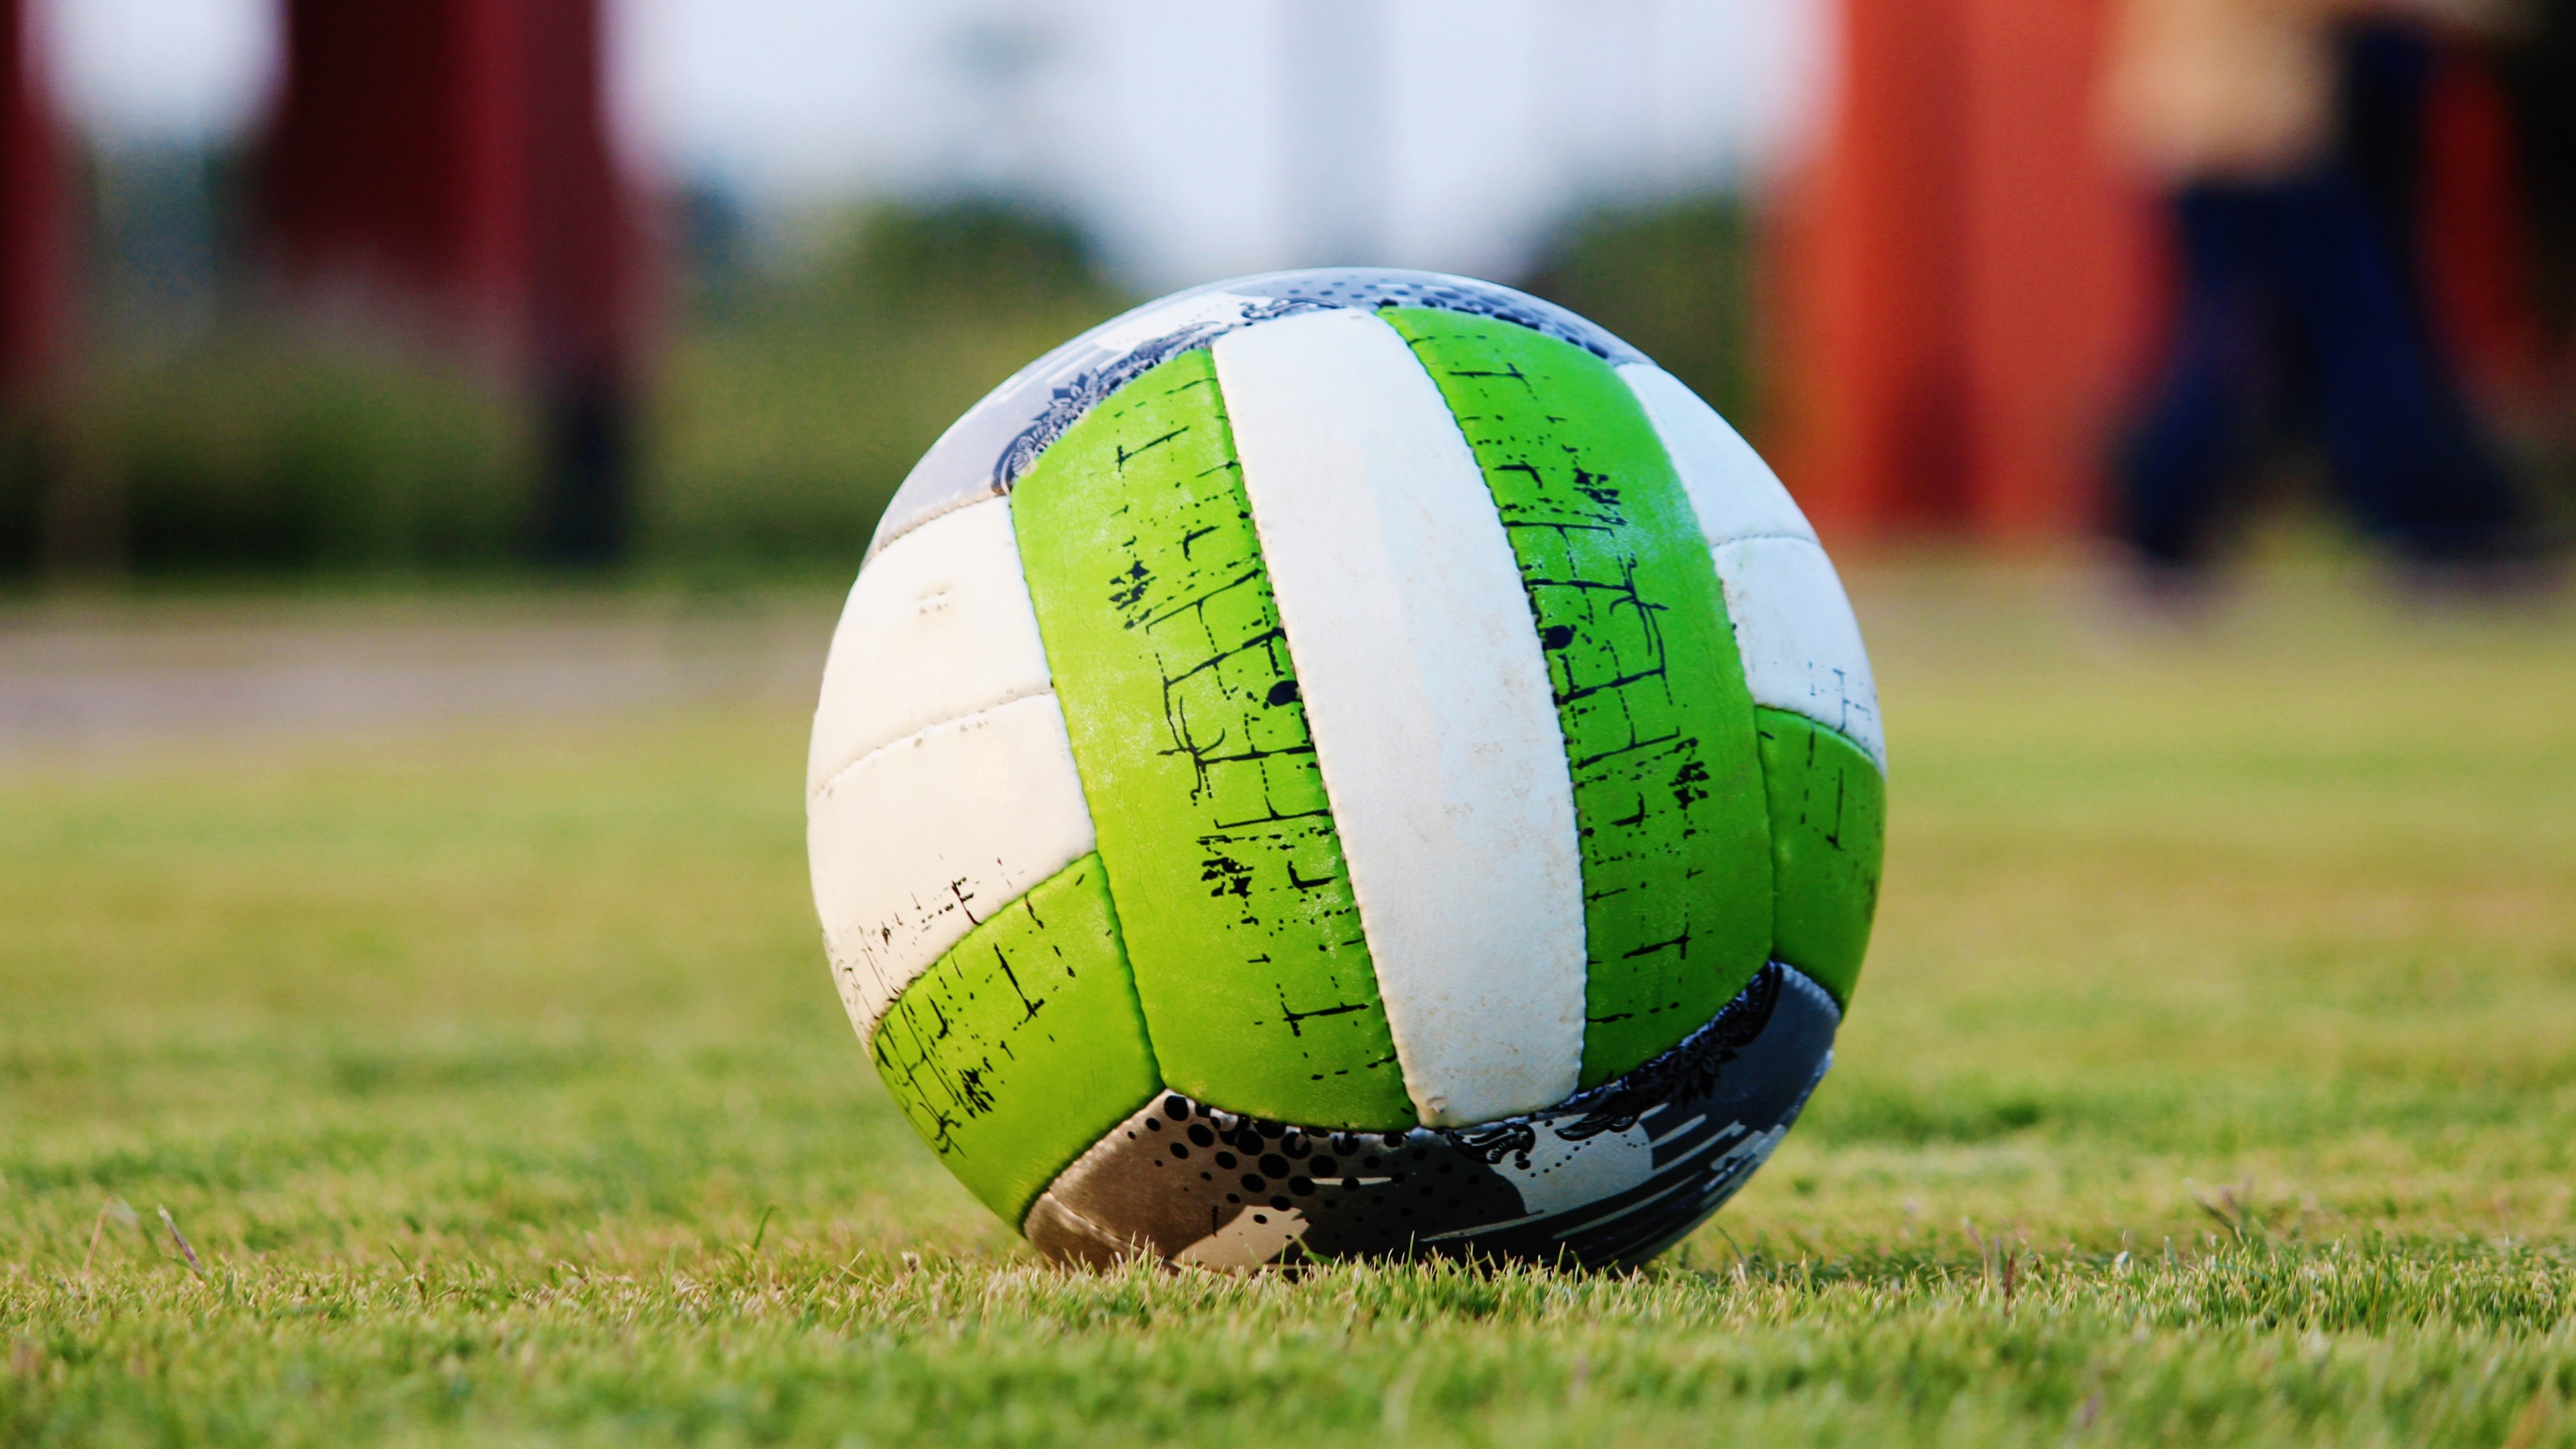 3840x2160  Wallpaper soccer ball, grass, green